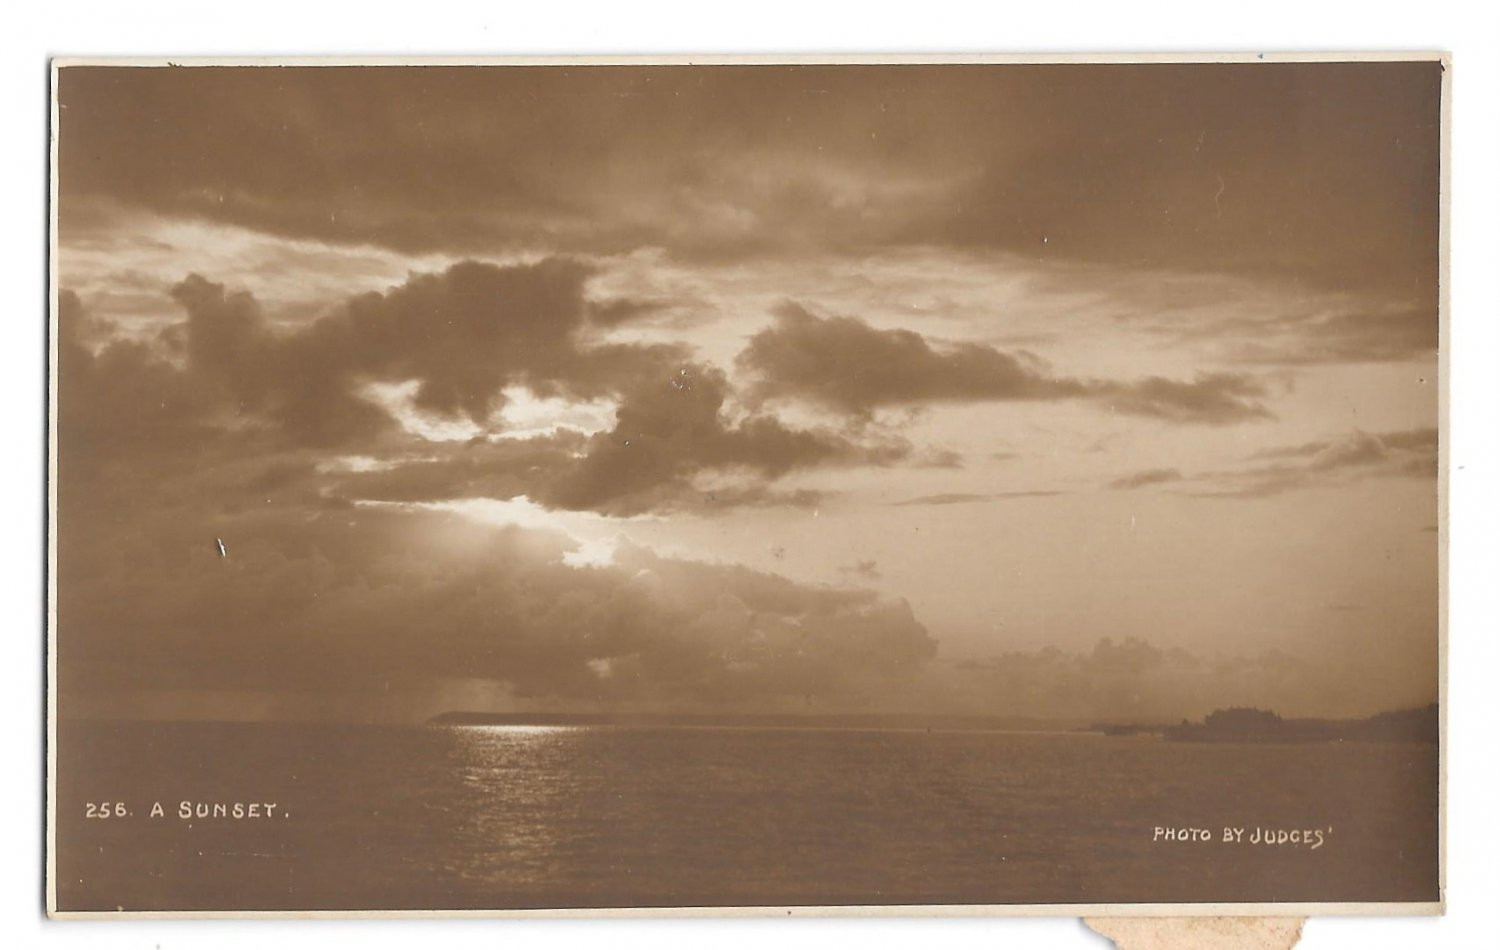 RPPC Sunset Judges Real Photo Sepia Postcard Hastings England